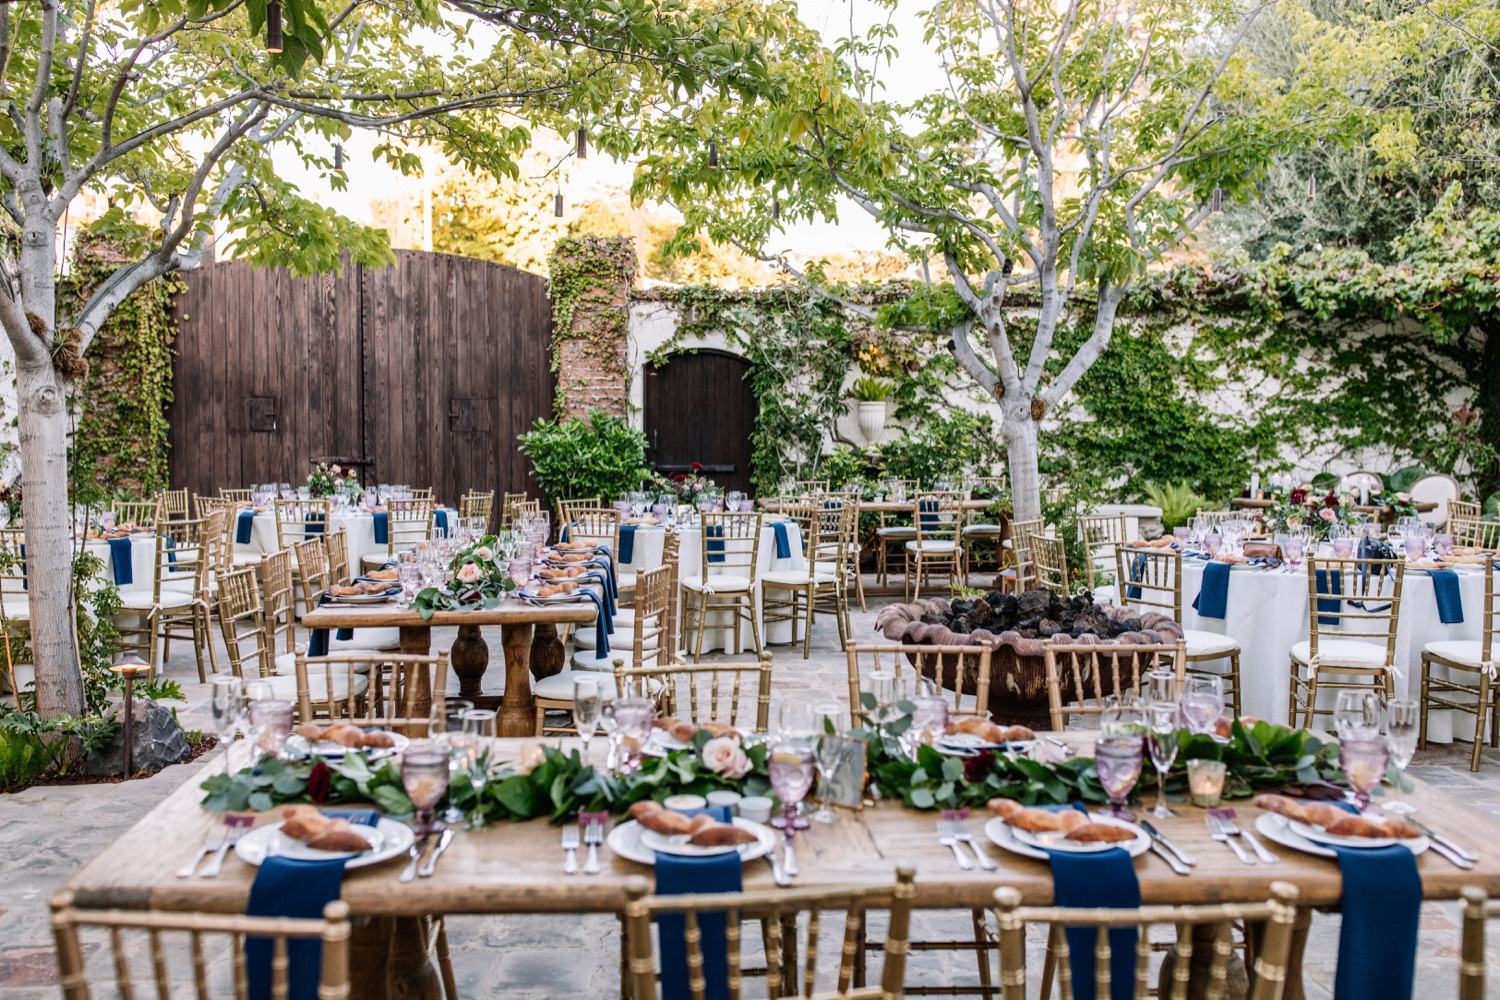 Villa San Juan Capistrano Wedding Photos - Outdoor Garden Reception